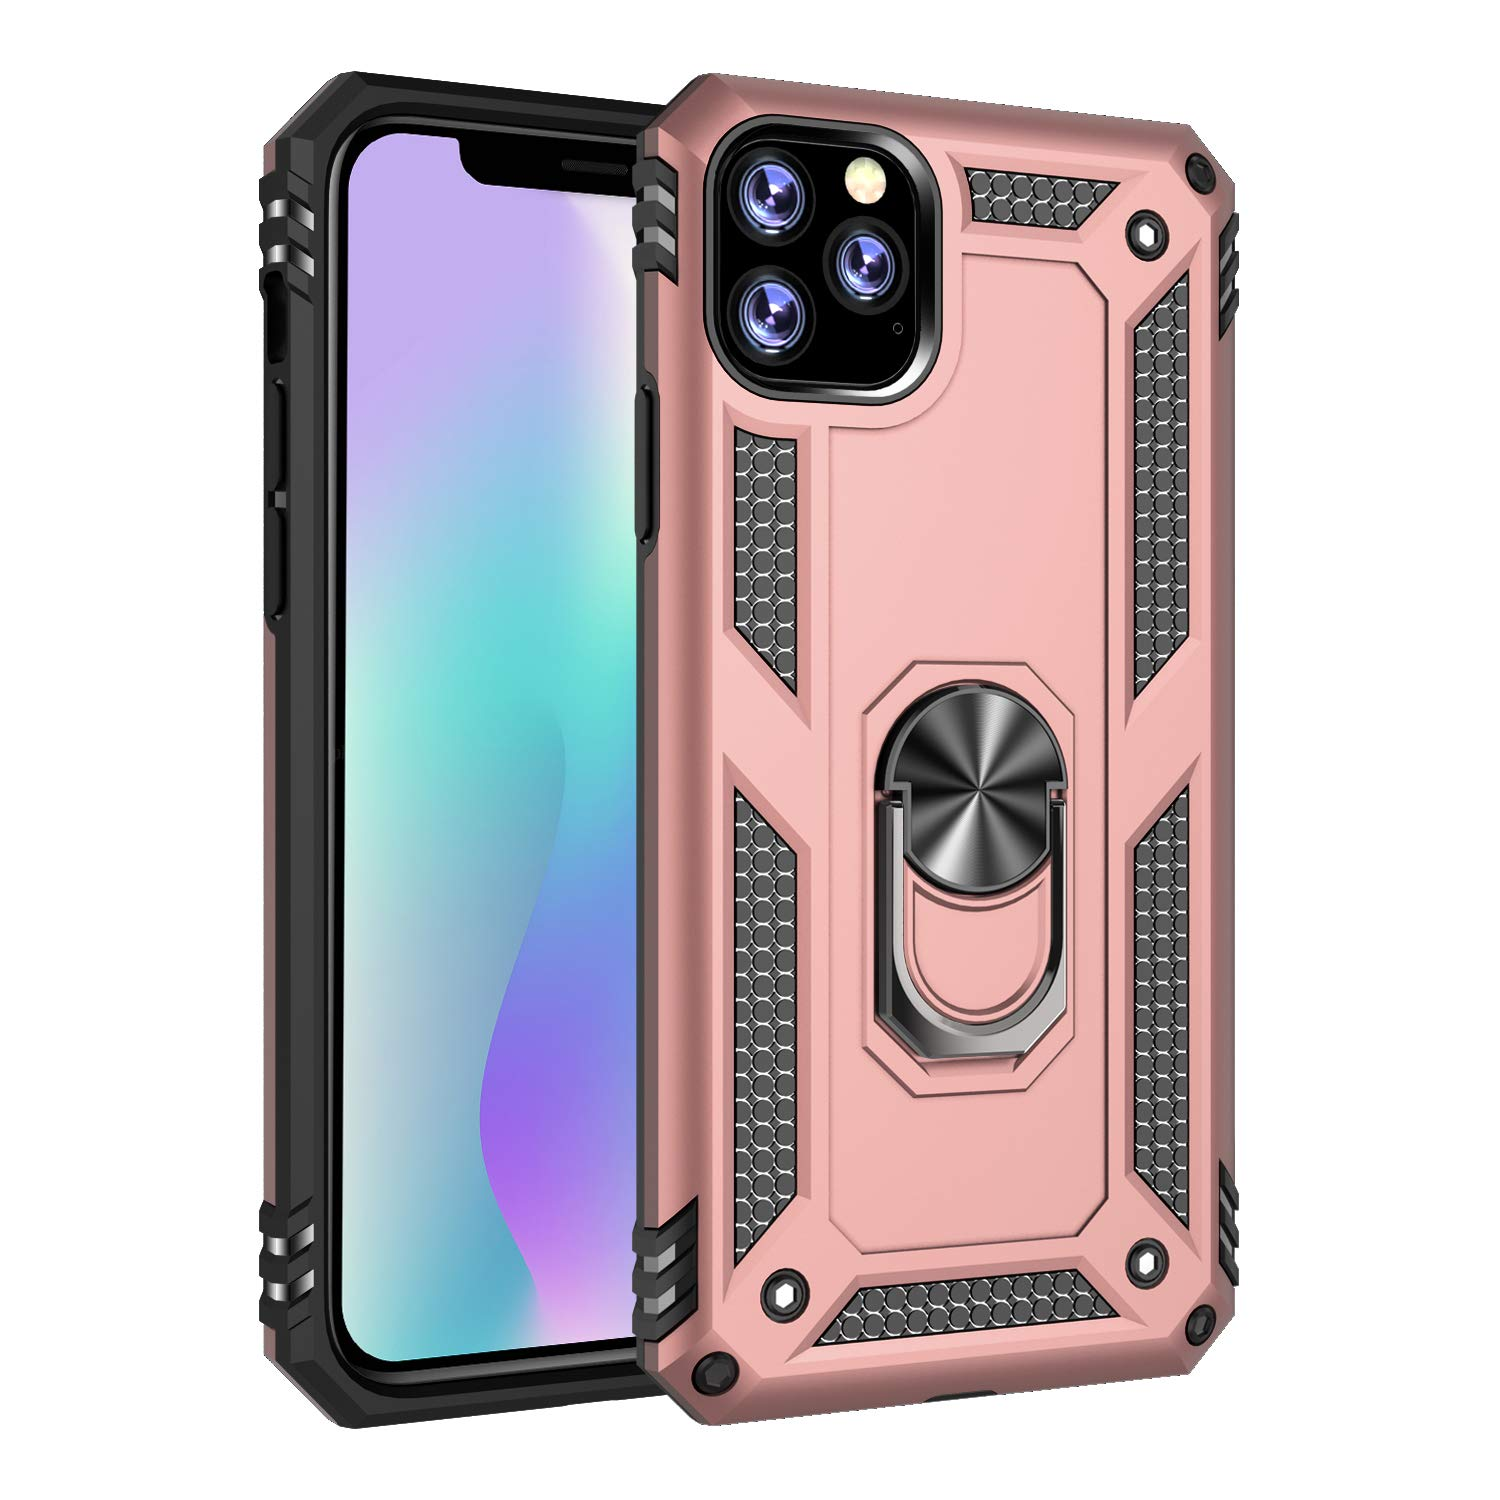 iPhone 11 Pro Max (iPhone 2019 6.5 Inch) Case, Futanwei Military Grade Rugged Armor Shockproof Phone Case with Metal Finger Ring Kickstand [Fit Magnetic Car Mount] for iPhone 11 Pro Max, Rose Gold by Futanwei